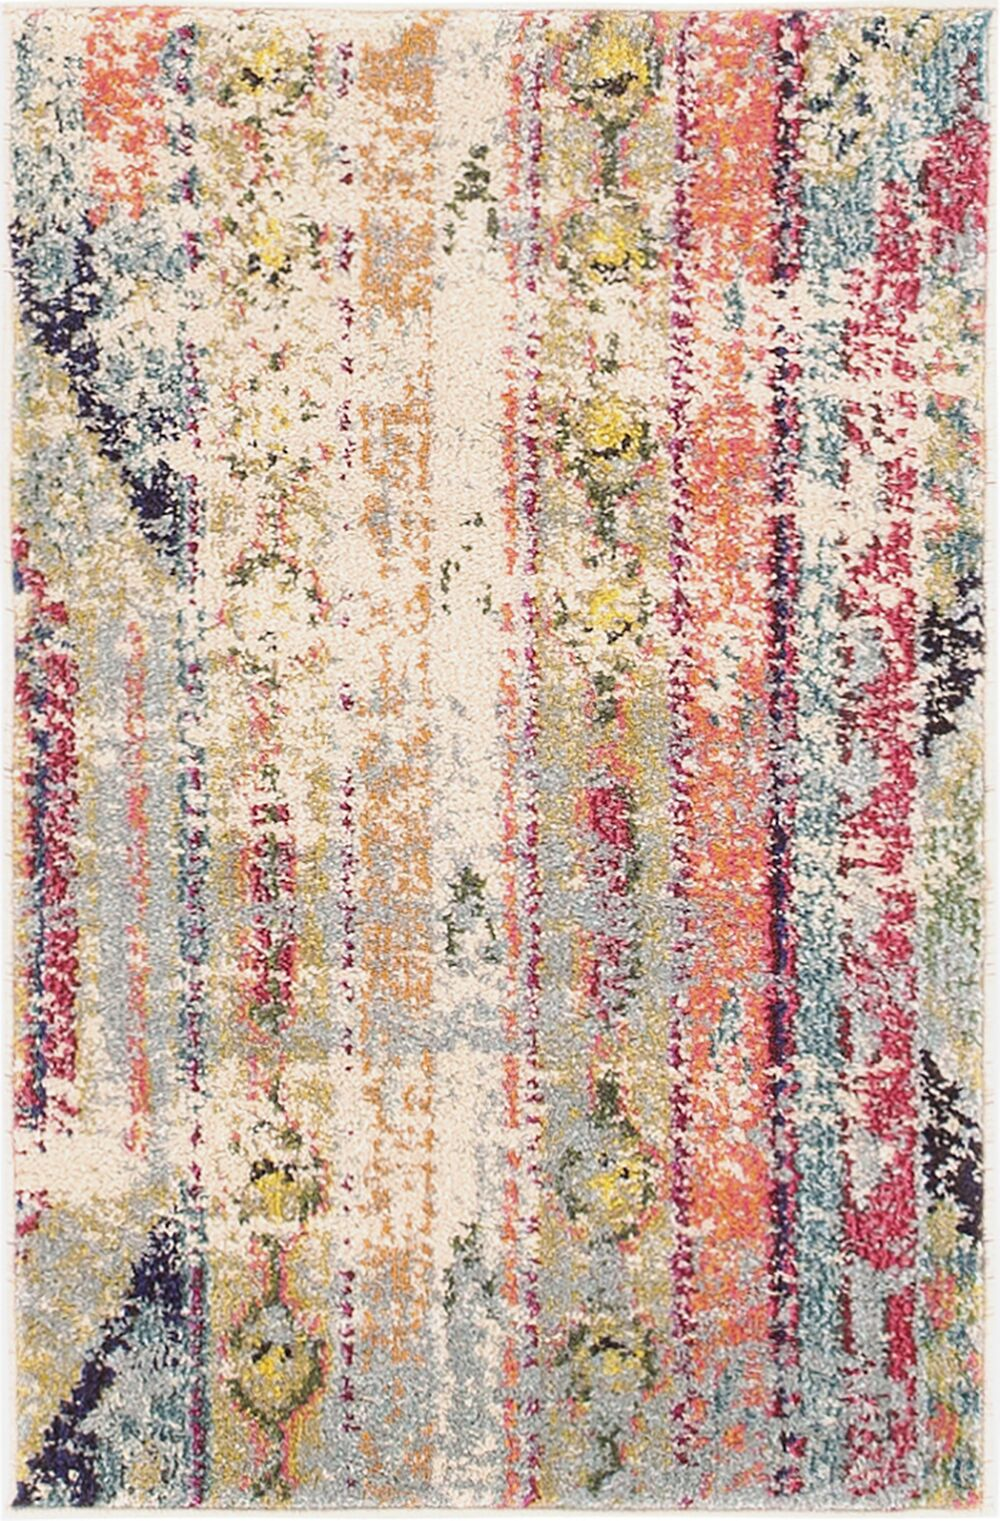 Newburyport Beige/Orange Area Rug Rug Size: Rectangle 8' x 10'